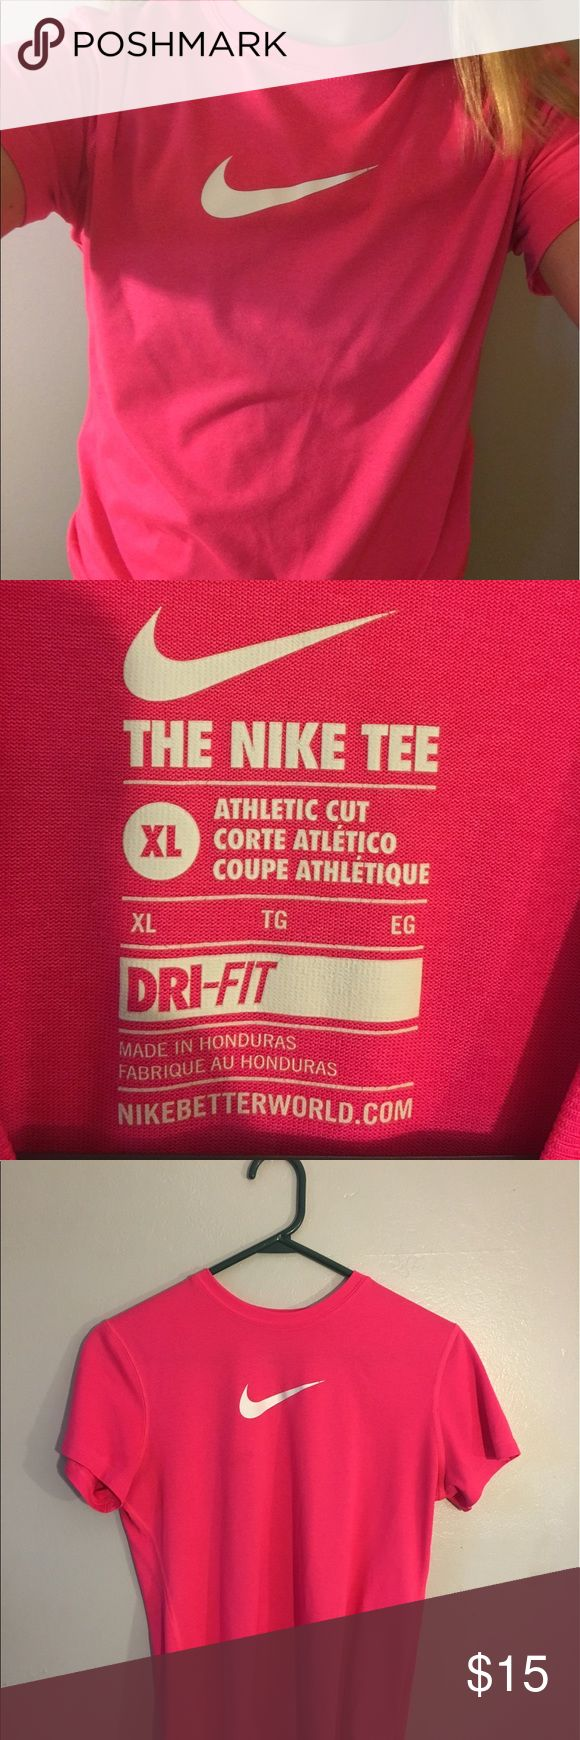 Short Sleeve Nike Active Wear * XL kids hot pink Nike shirt  * Kids XL , but can fit women's s or xs  * No stains * MAKE AN OFFER :) * I have a second Nike shirt identical to this, (blue) , so feel free to make a bundle!  * My Bundle Savings: 10% off 2 or more items Nike Tops Tees - Short Sleeve